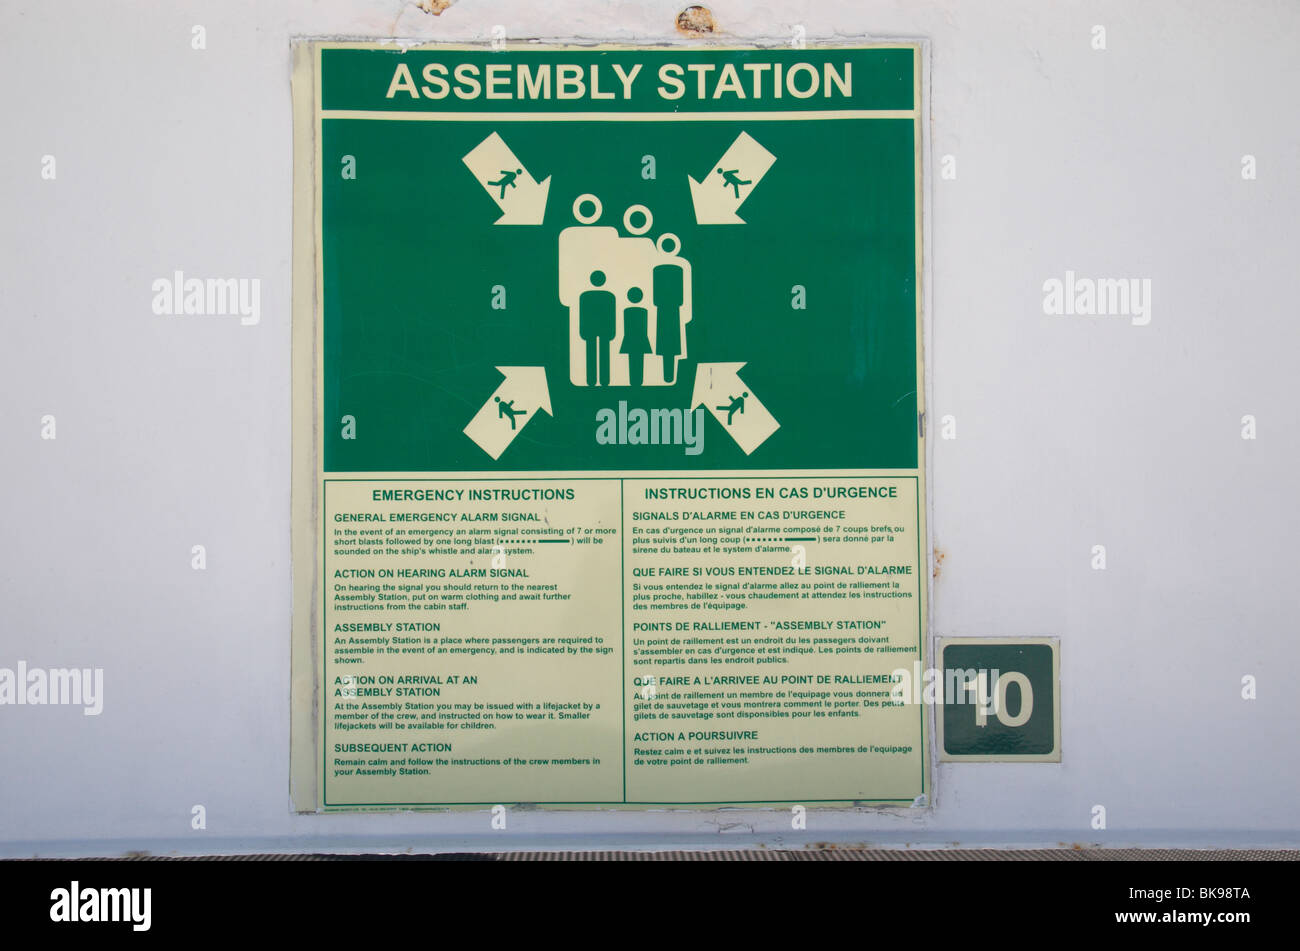 an assembly station or muster stations meeting sign on the stena